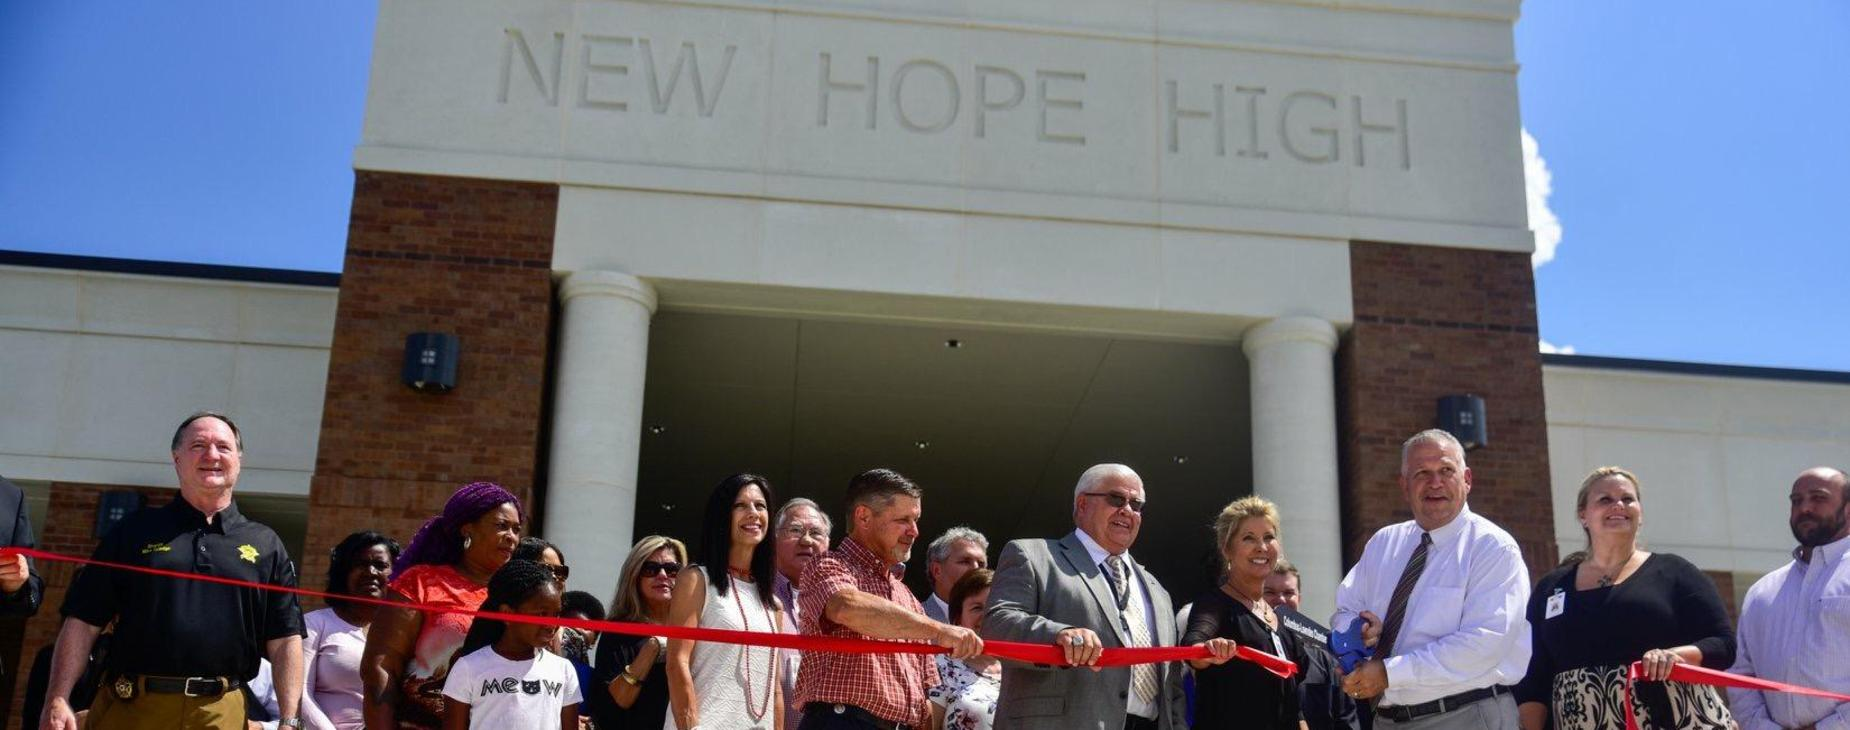 Ribbon Cutting at New Hope High School